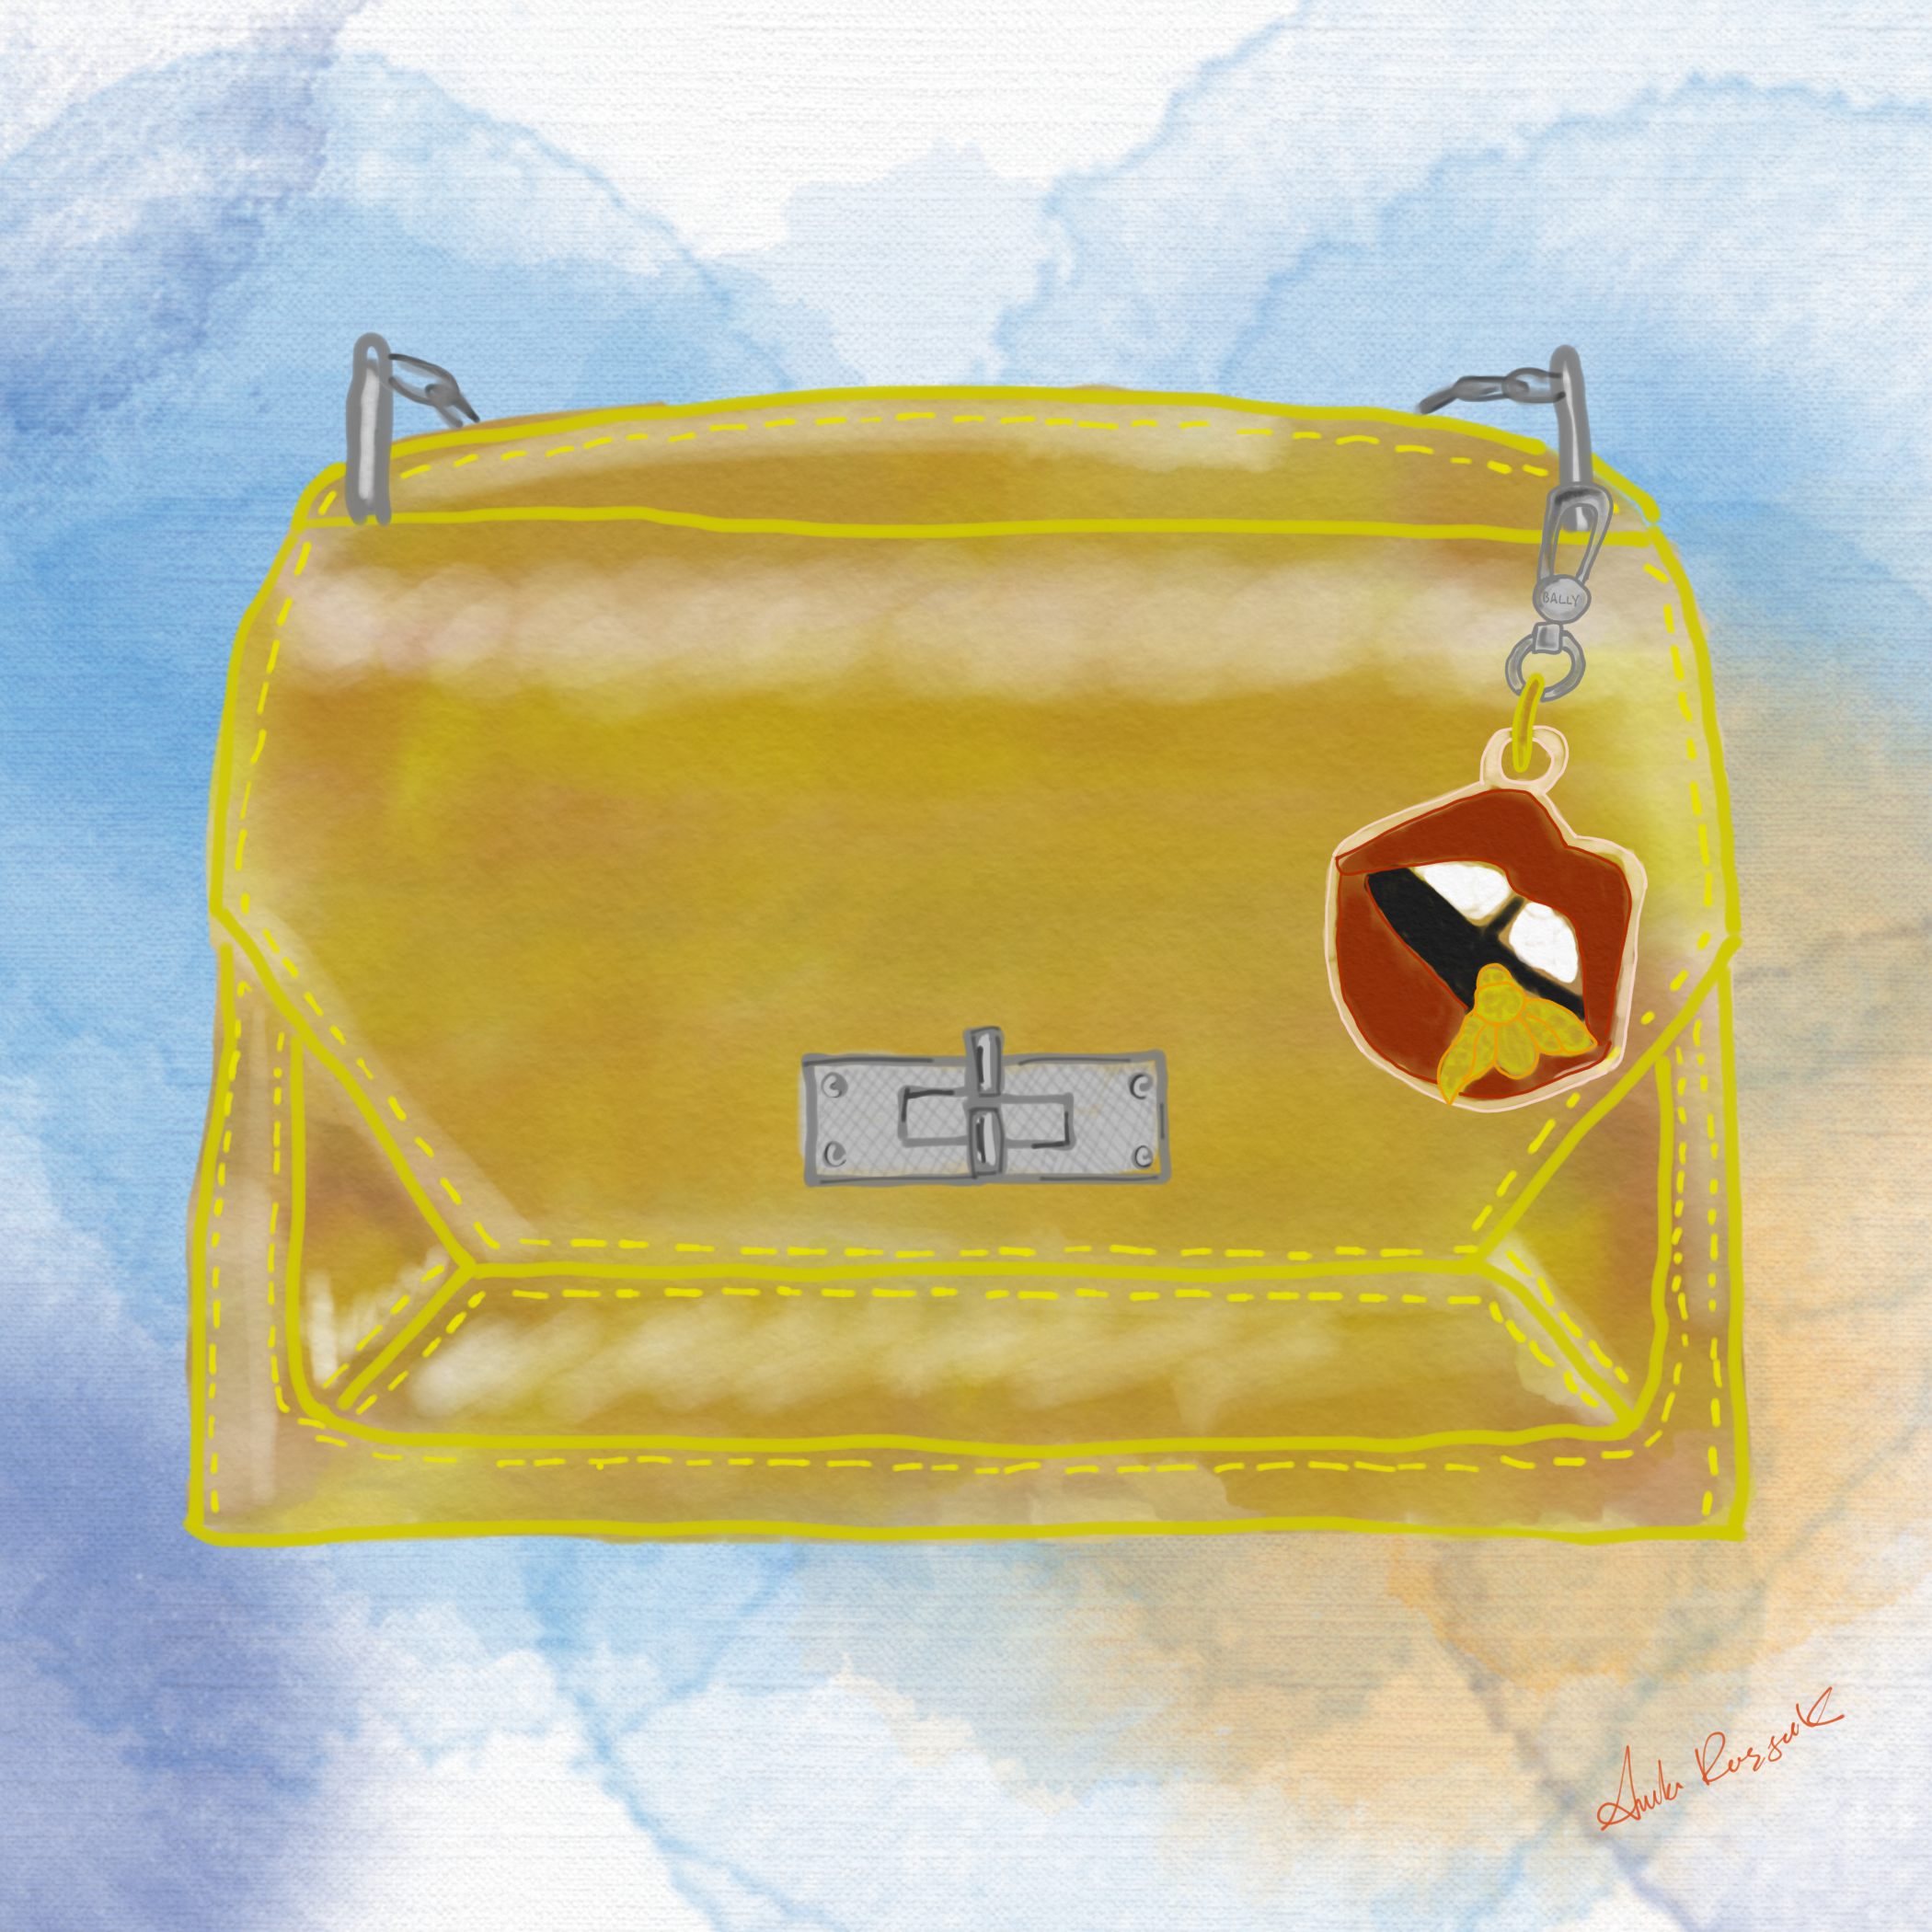 The Suzy bag with a playful keychain clip. A illustration from their fall collection.